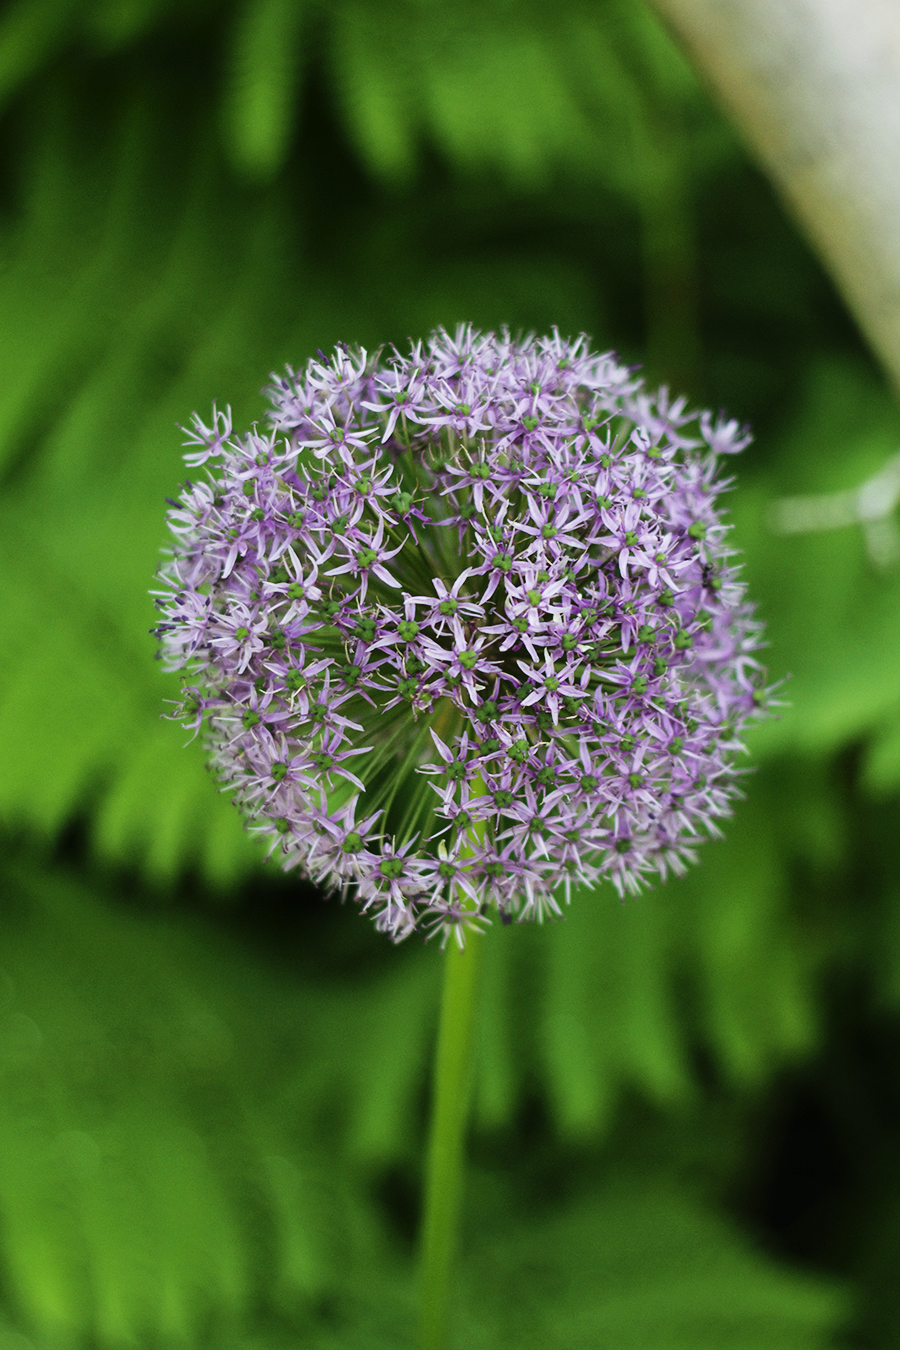 Growing Perennials Series: Allium